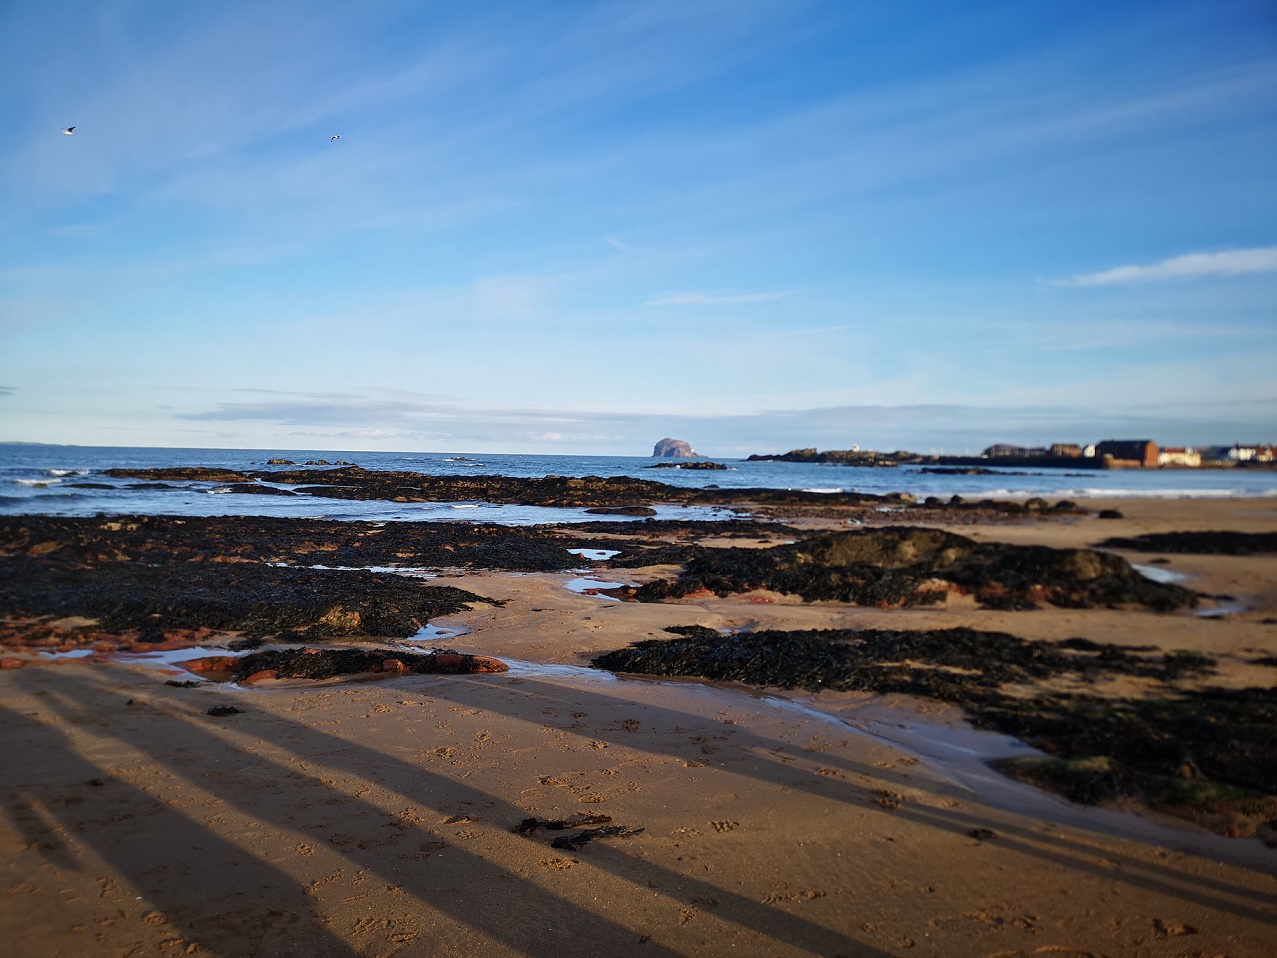 The view out to the Bass Rock